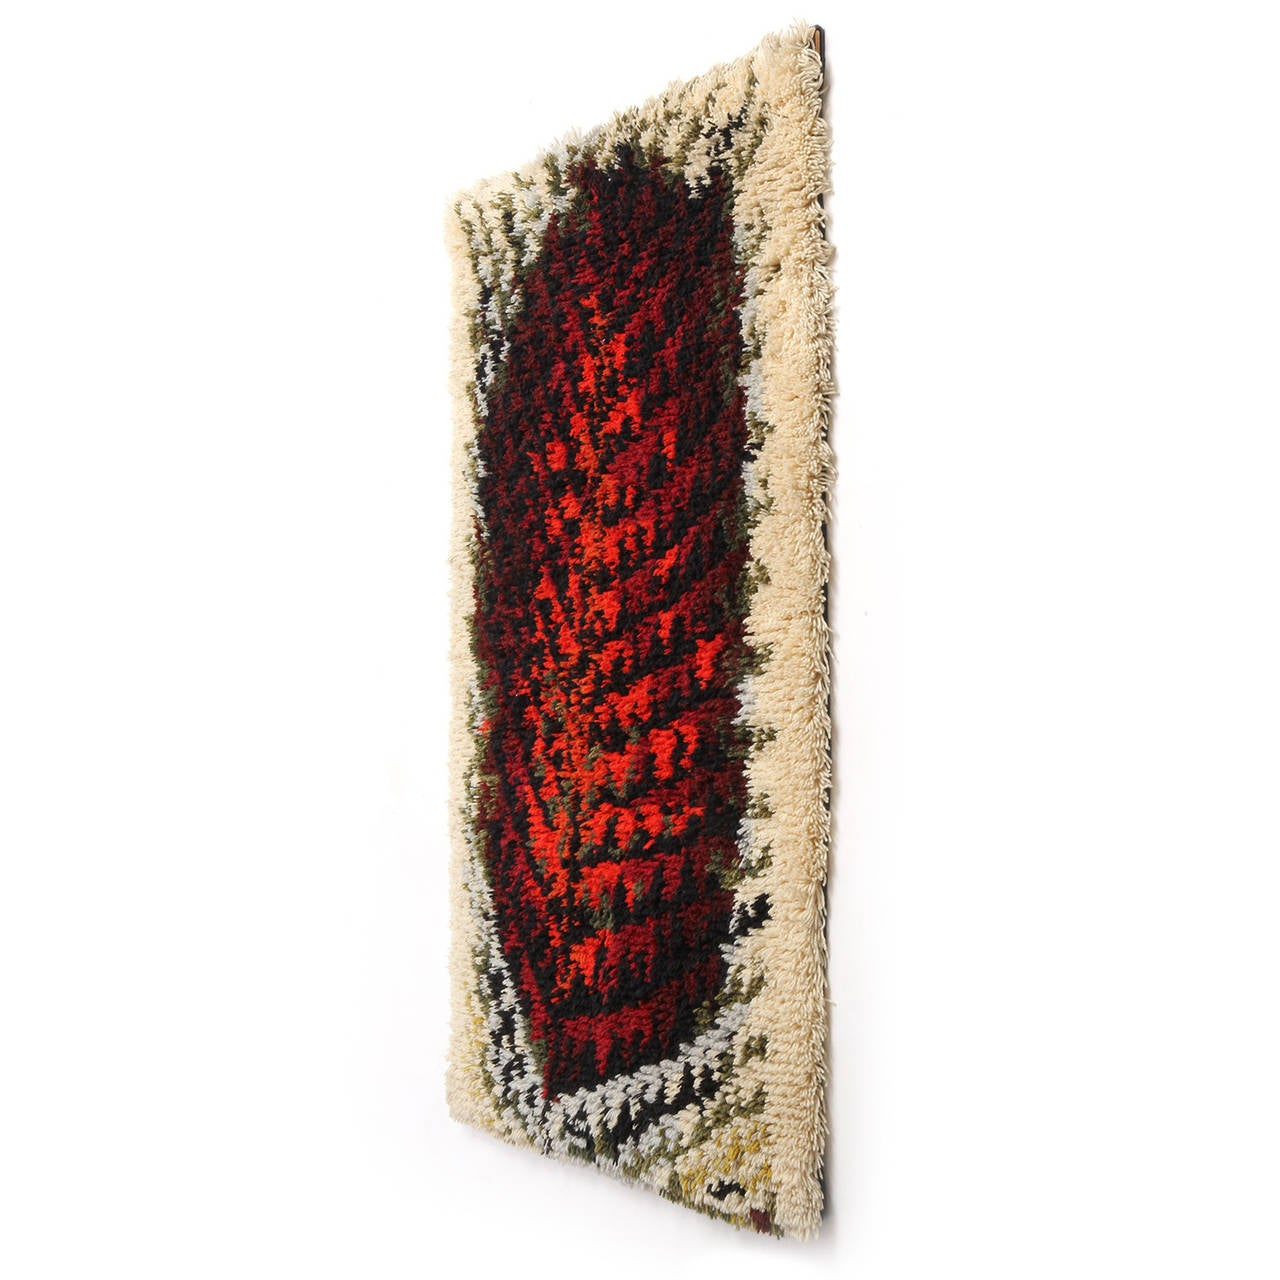 A fine handmade Rya rug or wall hanging having an expressive abstracted shape, masterfully loomed with a thick pile in a rich palette of cream, grey, russet, black, red, blue and burnt umber.